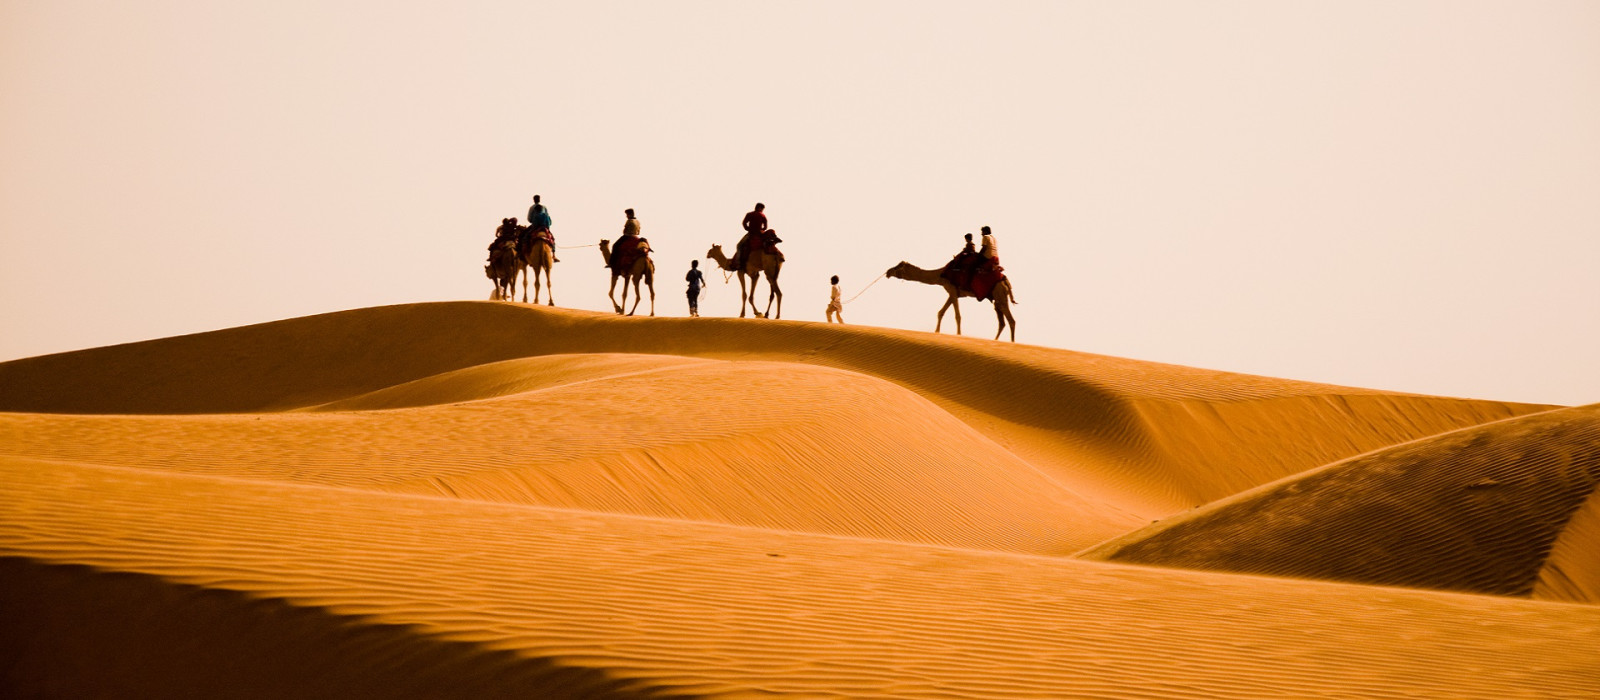 North India travel guide - Camel safari tour in Rajasthan, India.